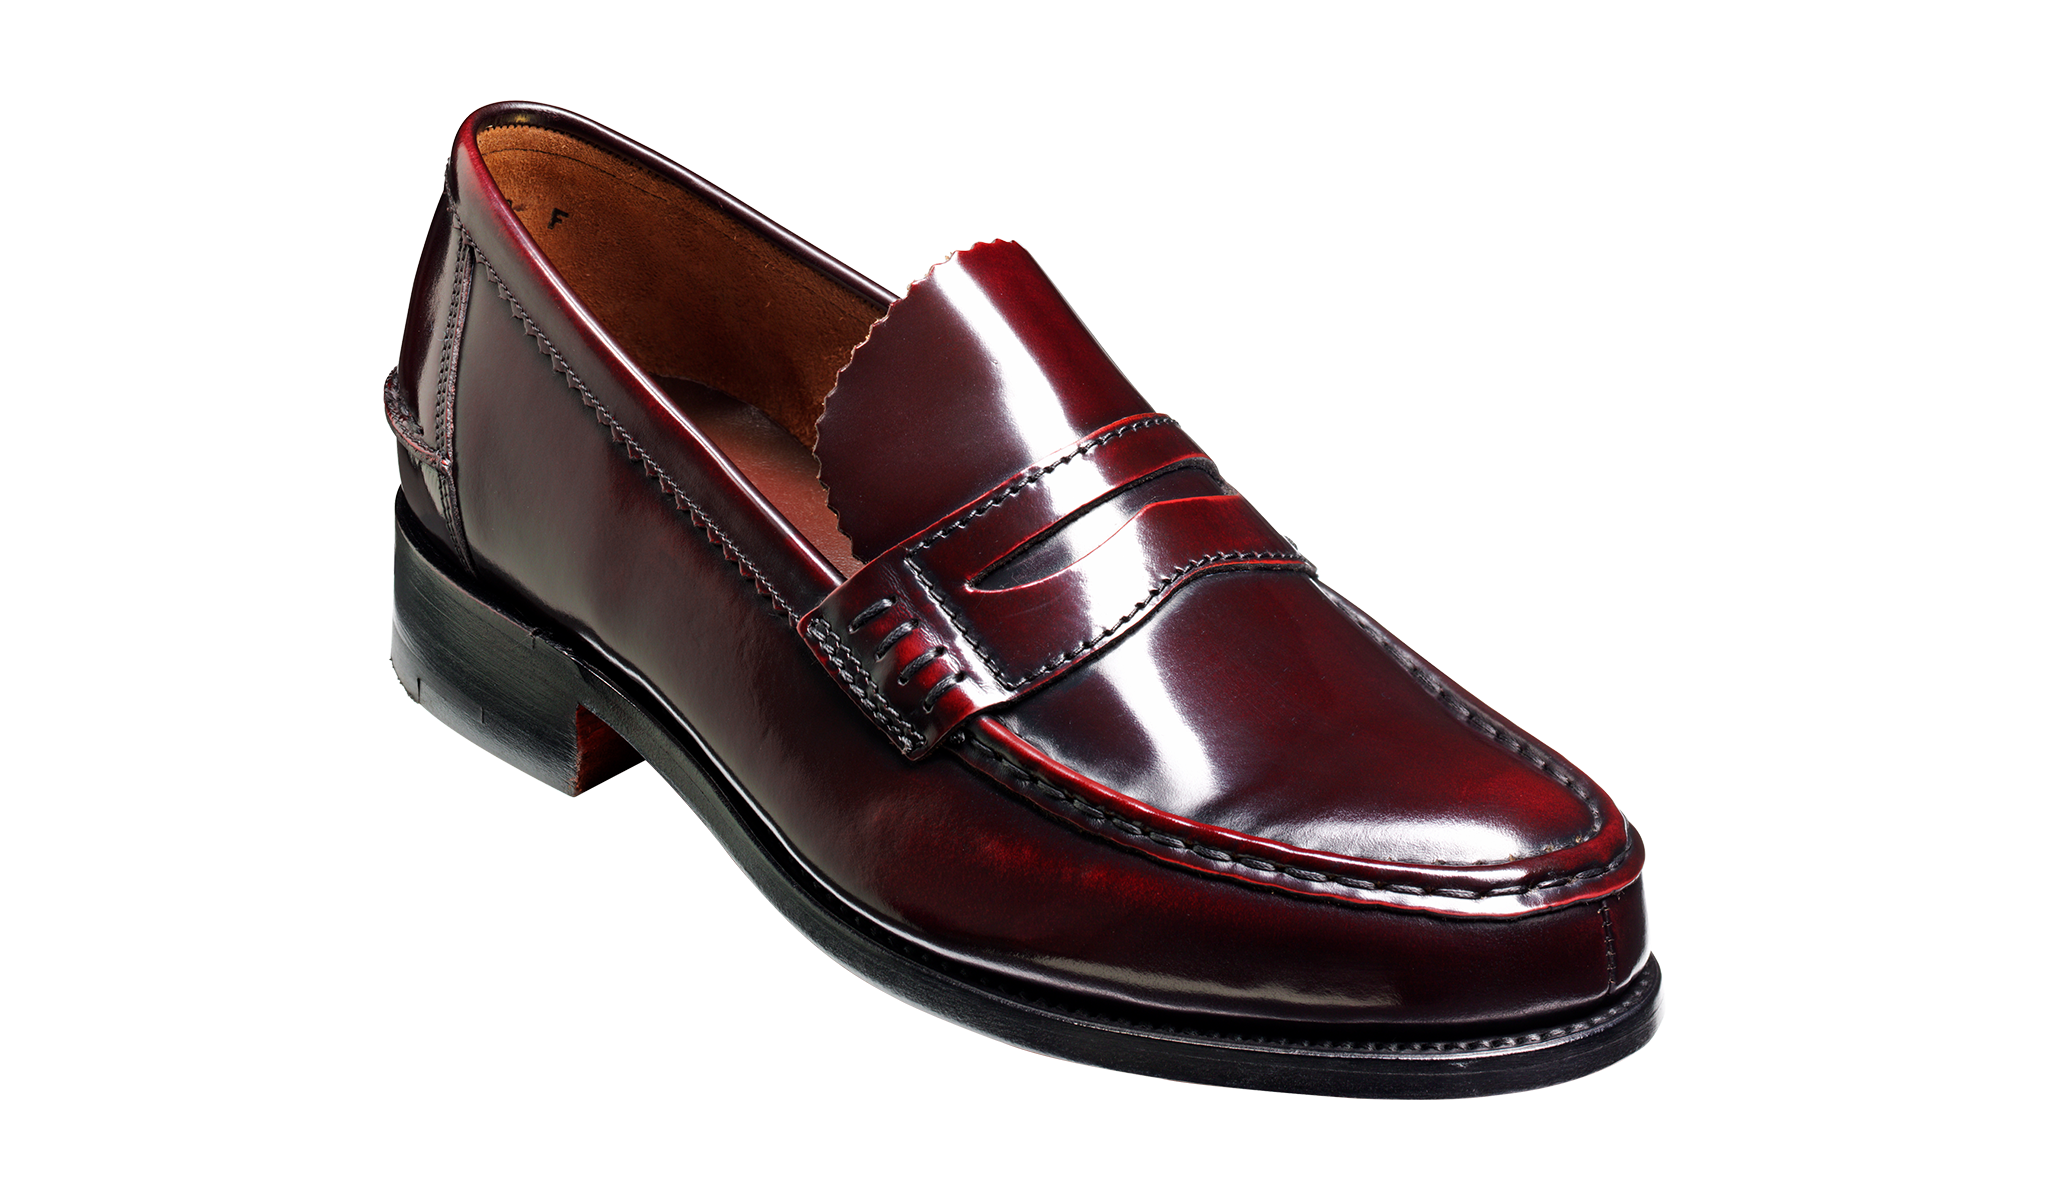 Caruso - Burgundy Hi-Shine - Penny Loafer Shoe | Barker ...